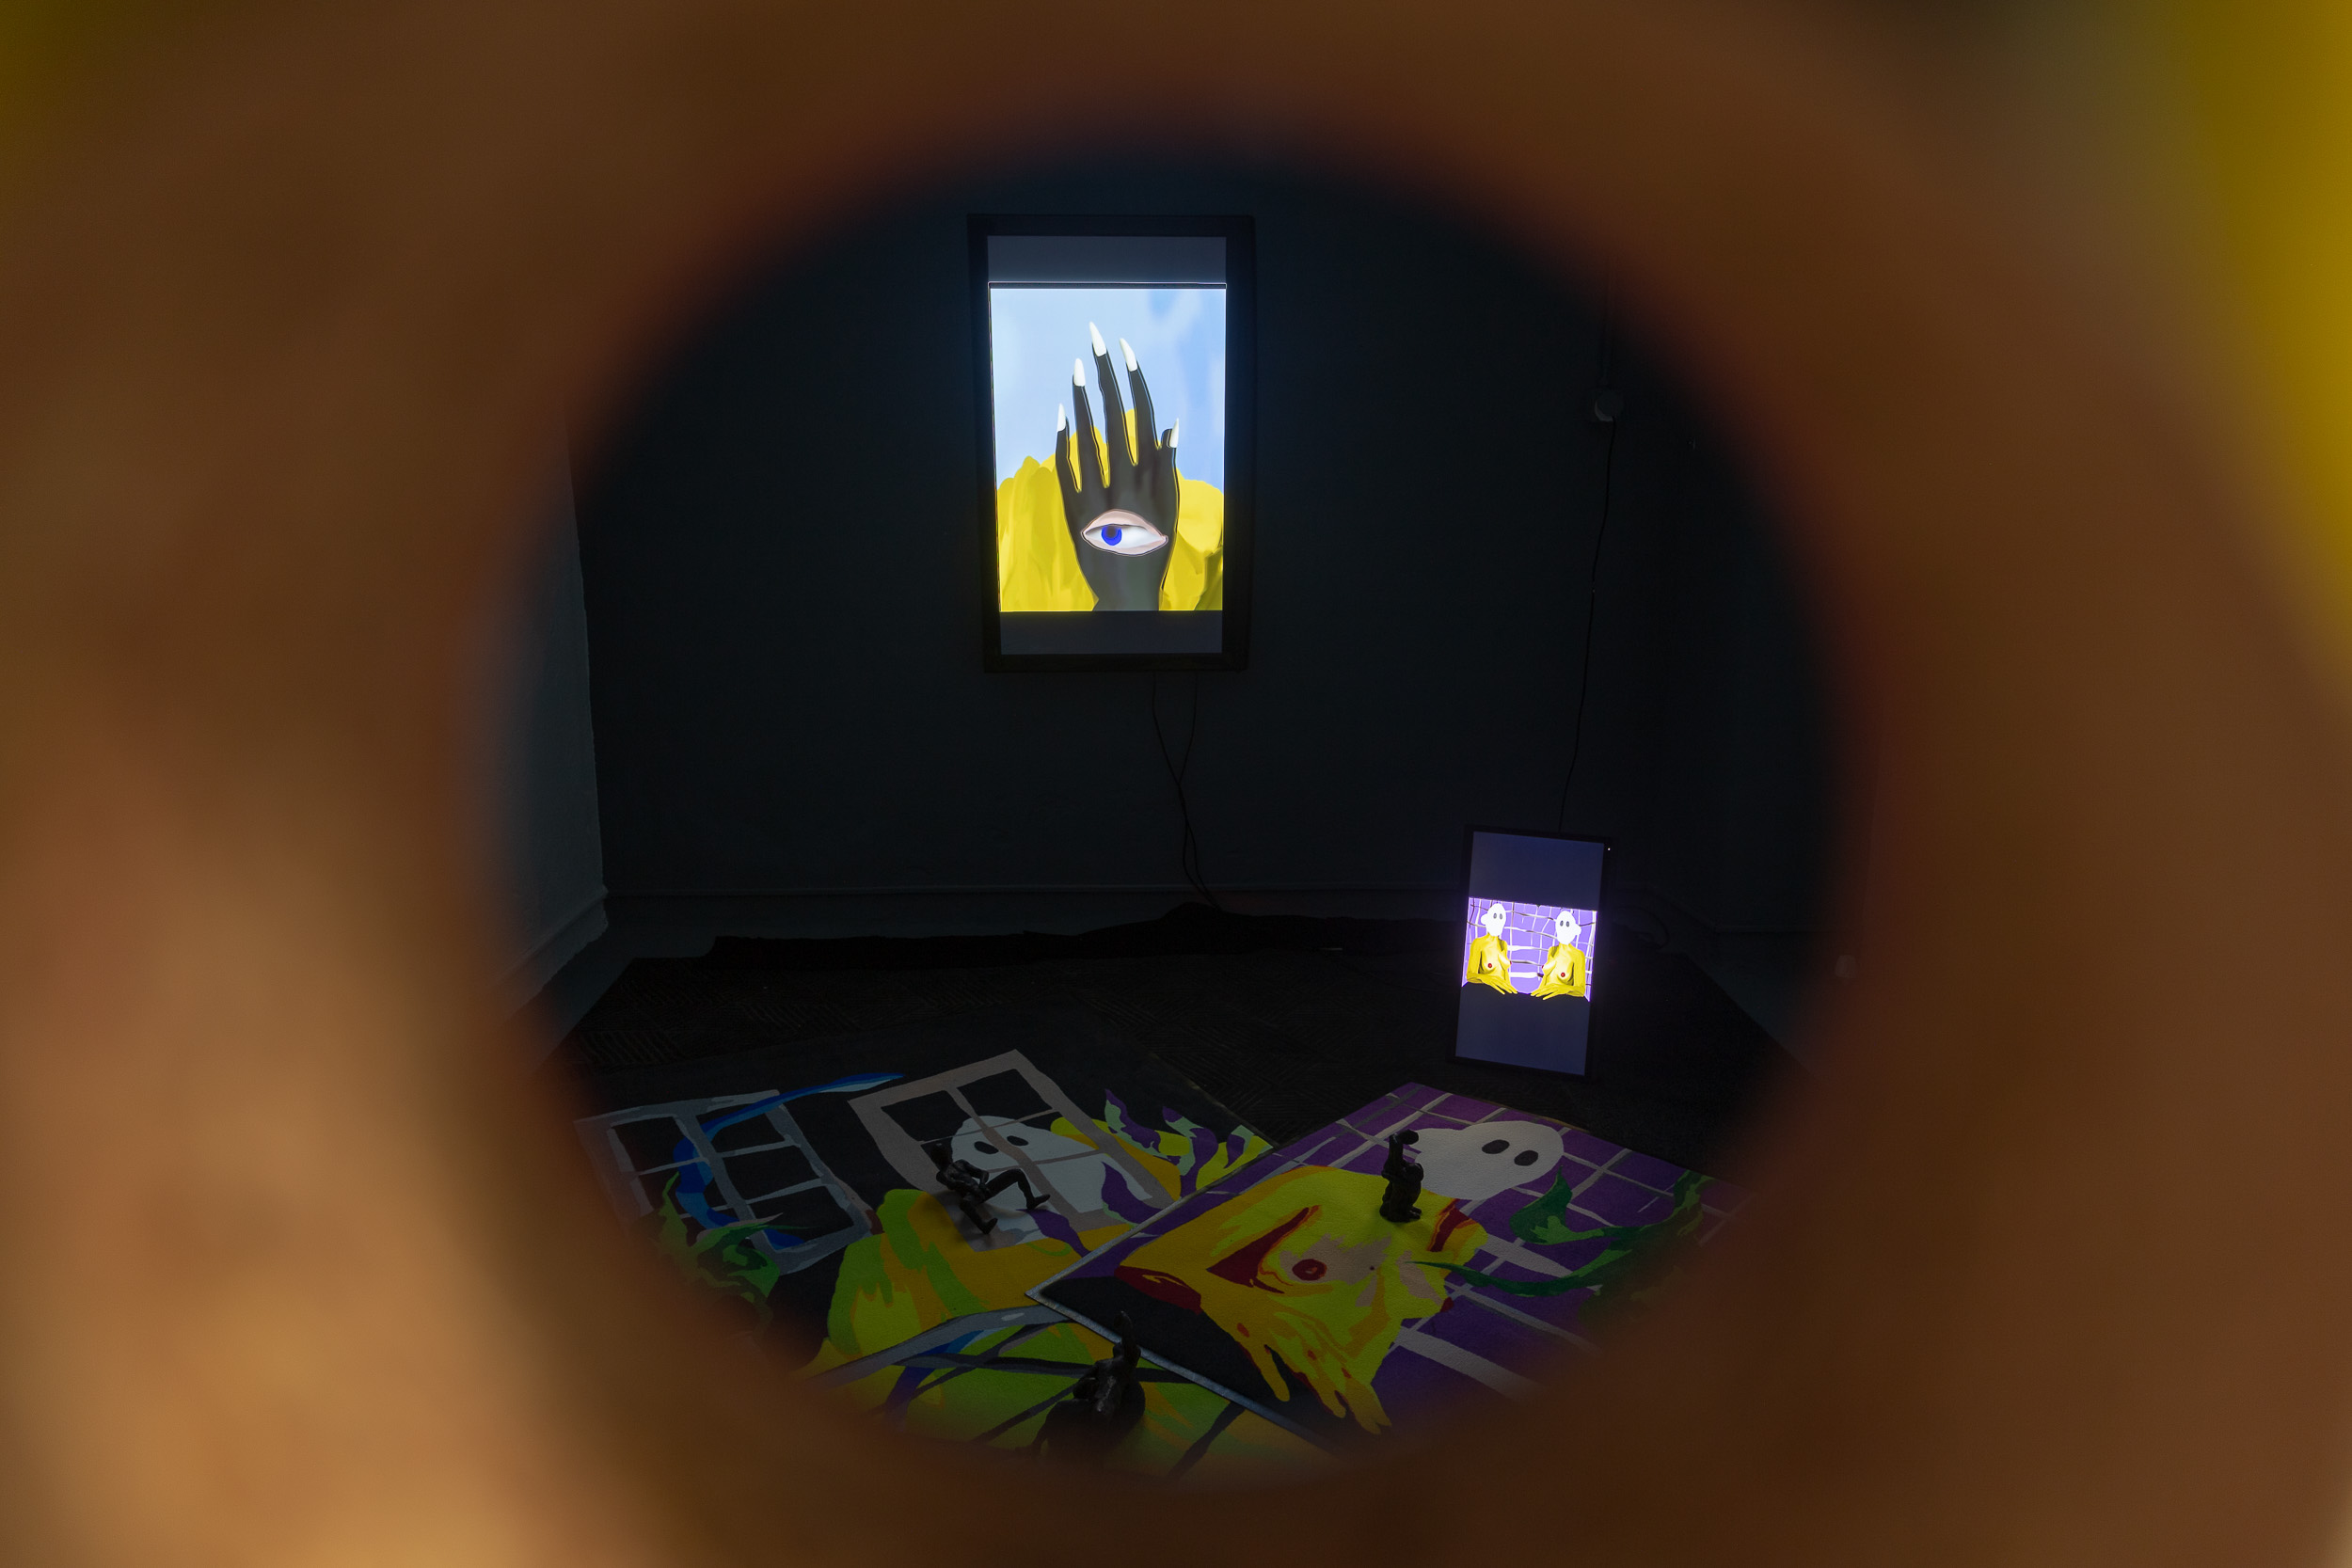 Peephole installation with videos, carpets and ceramic sculptures by Dieter Hall & Xénia Lucie Laffely, installation view  Photo: Kilian Bannwart